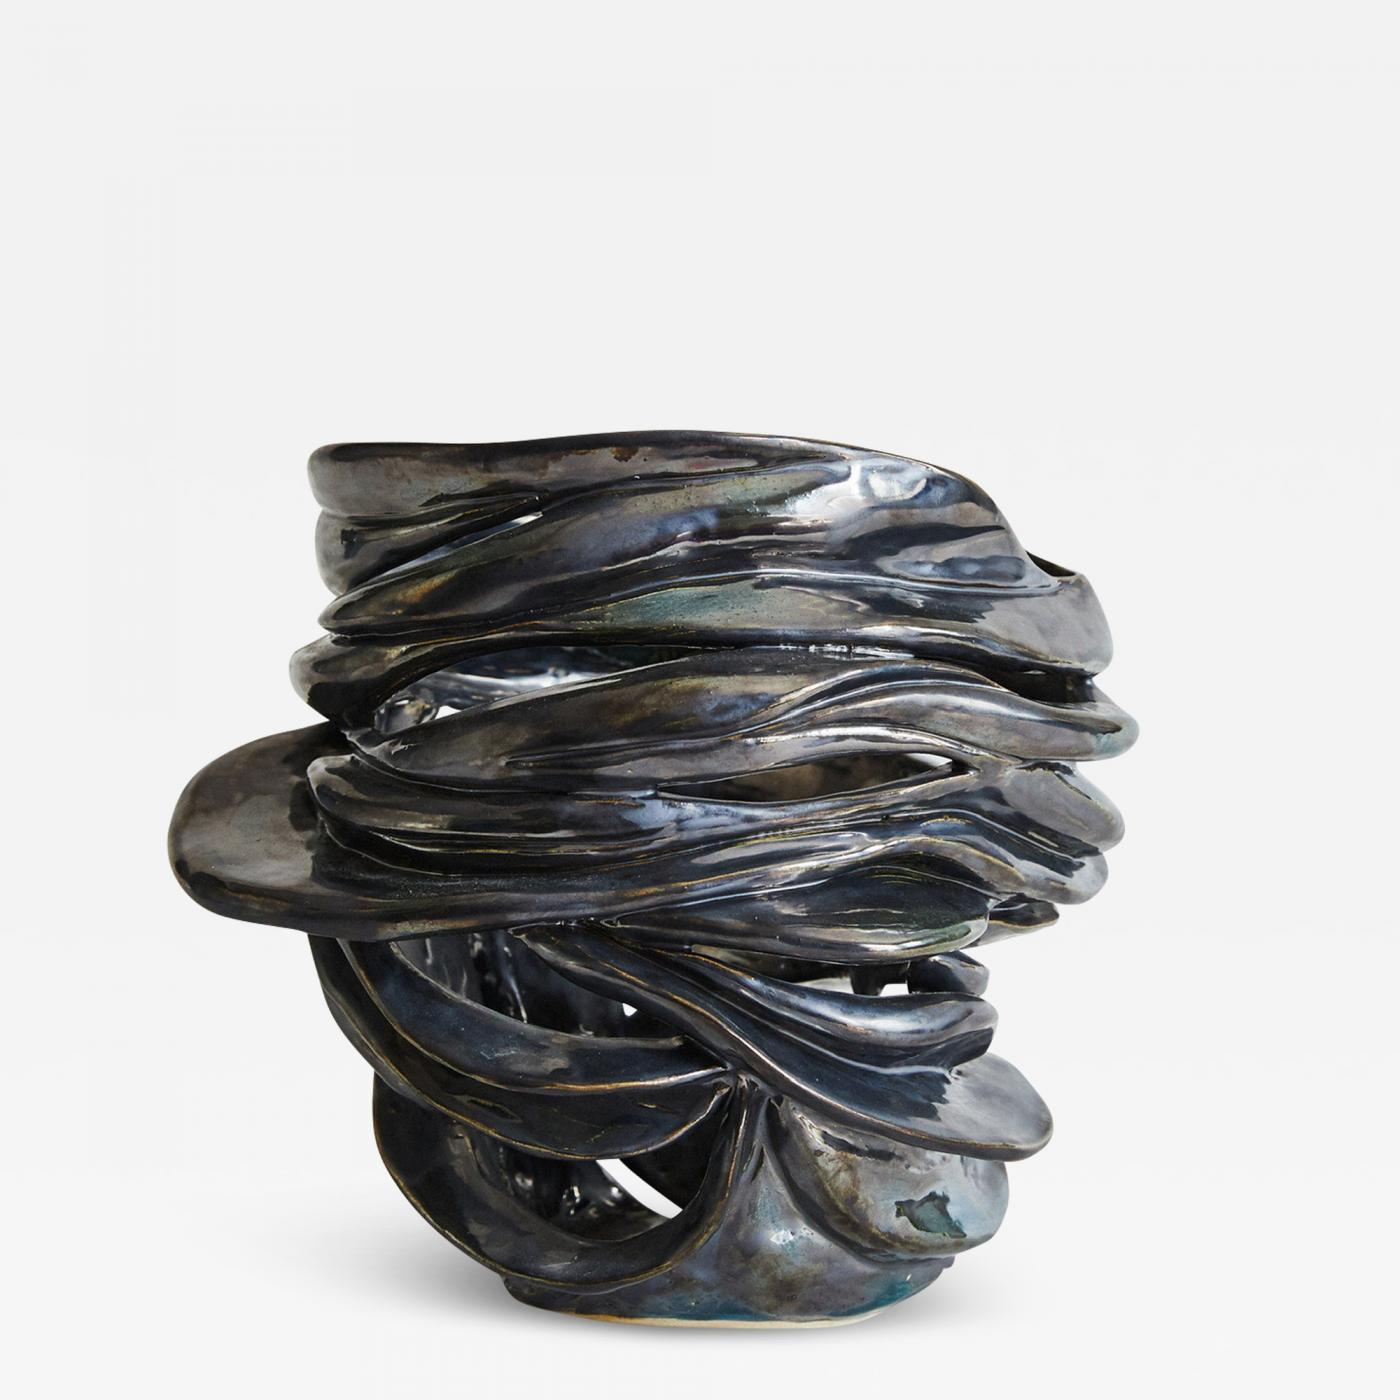 Hand-carved biomorphic vessel in white stoneware with a steel glaze. Signed: RP.